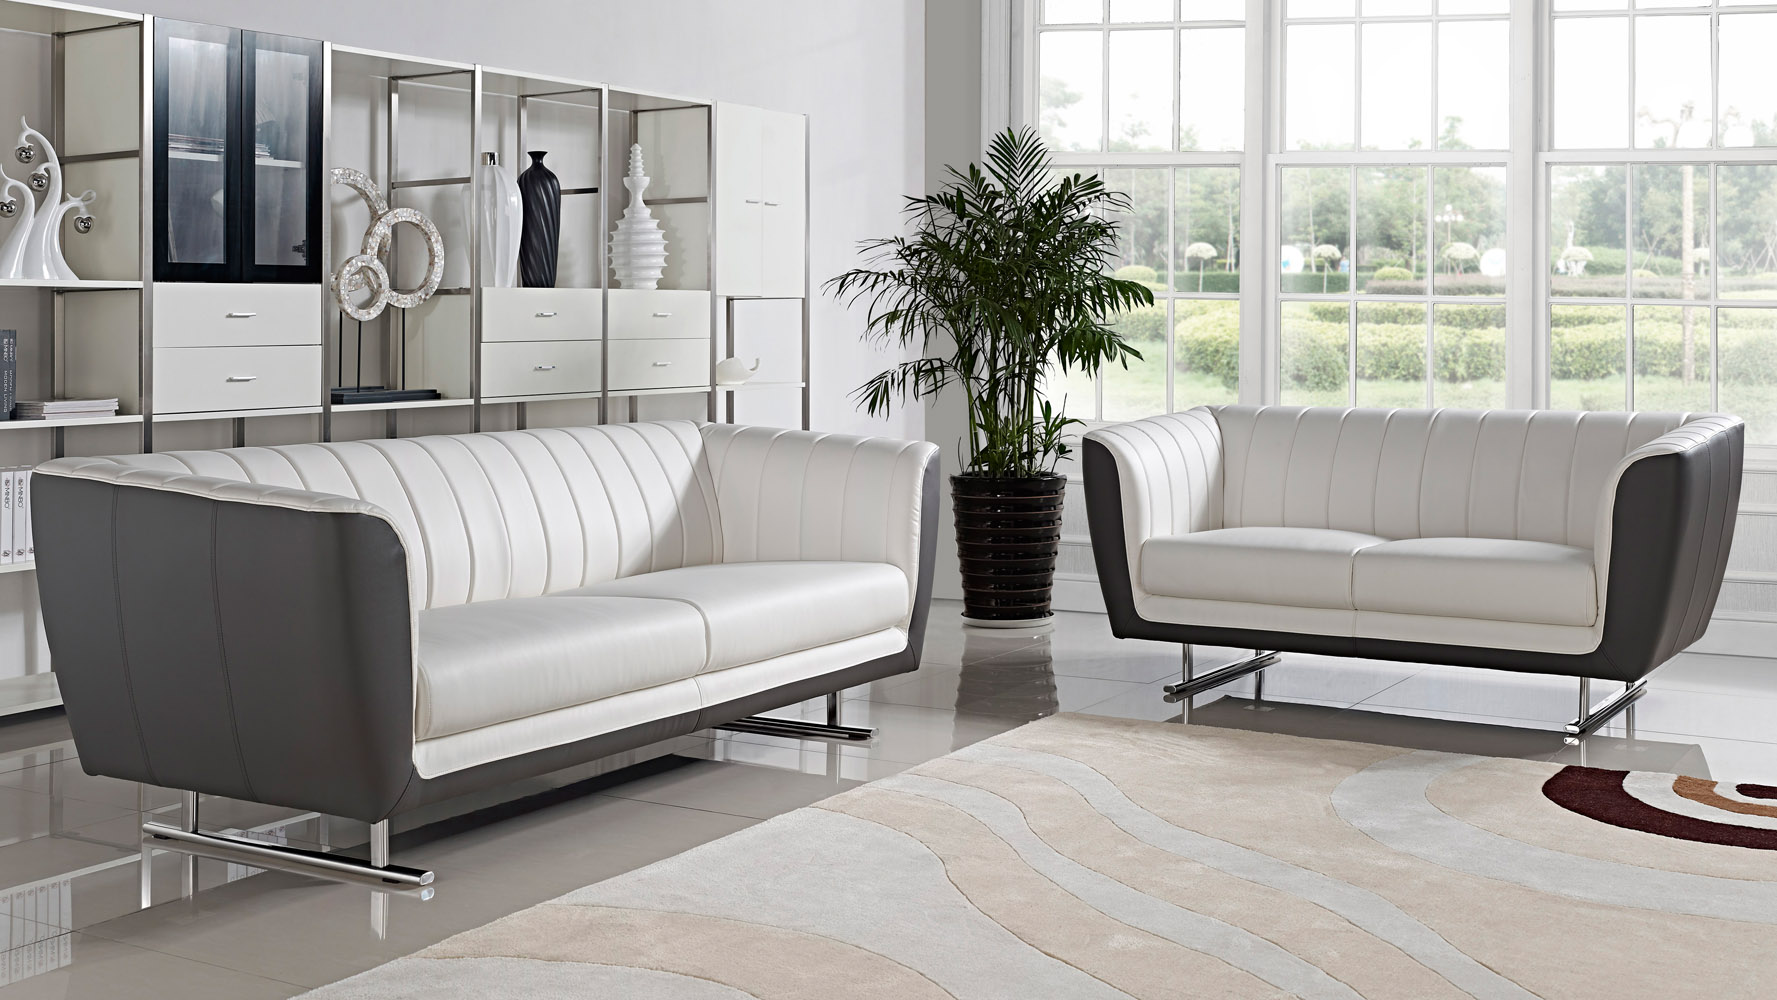 delta 3 2 1 sofa set white zuri furniture. Black Bedroom Furniture Sets. Home Design Ideas